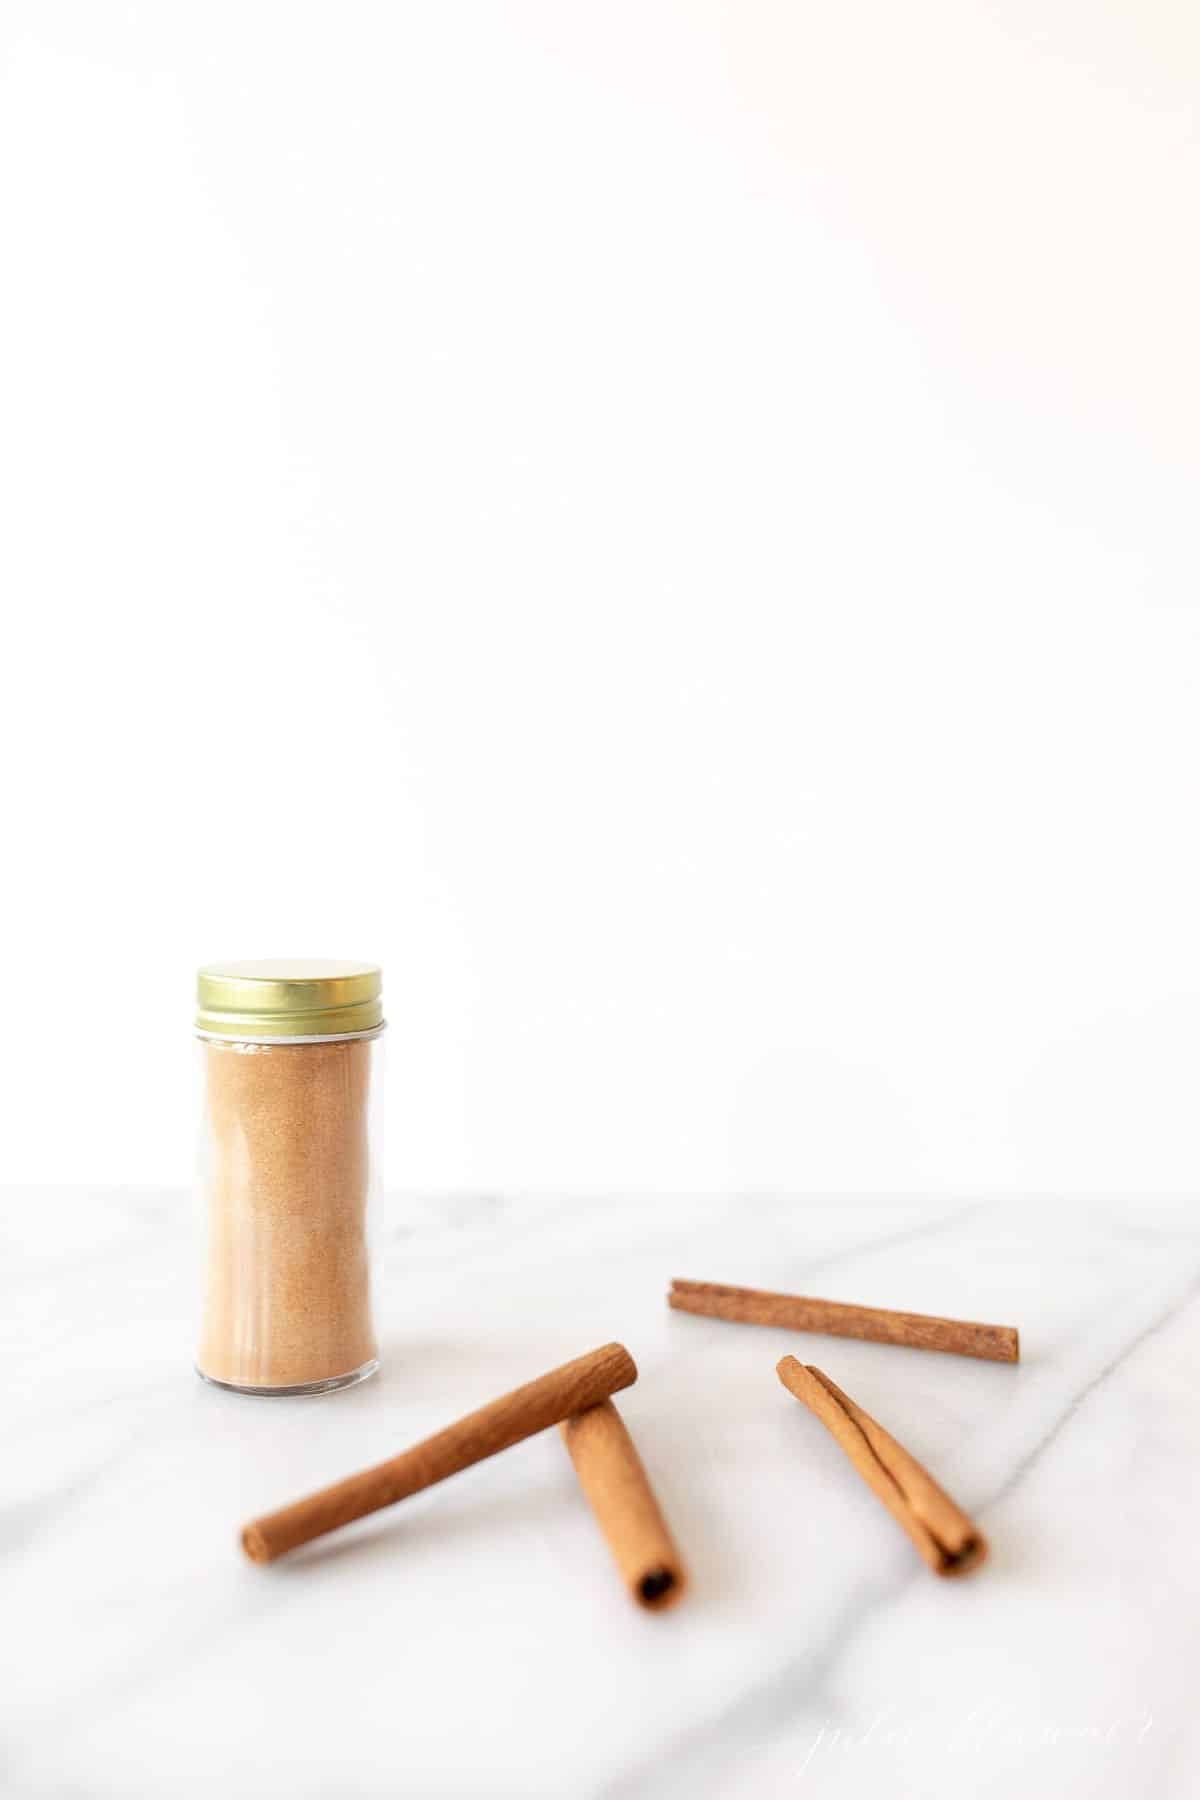 Marble surface with a glass spice jar of cinnamon sugar, cinnamon sticks strewn about.